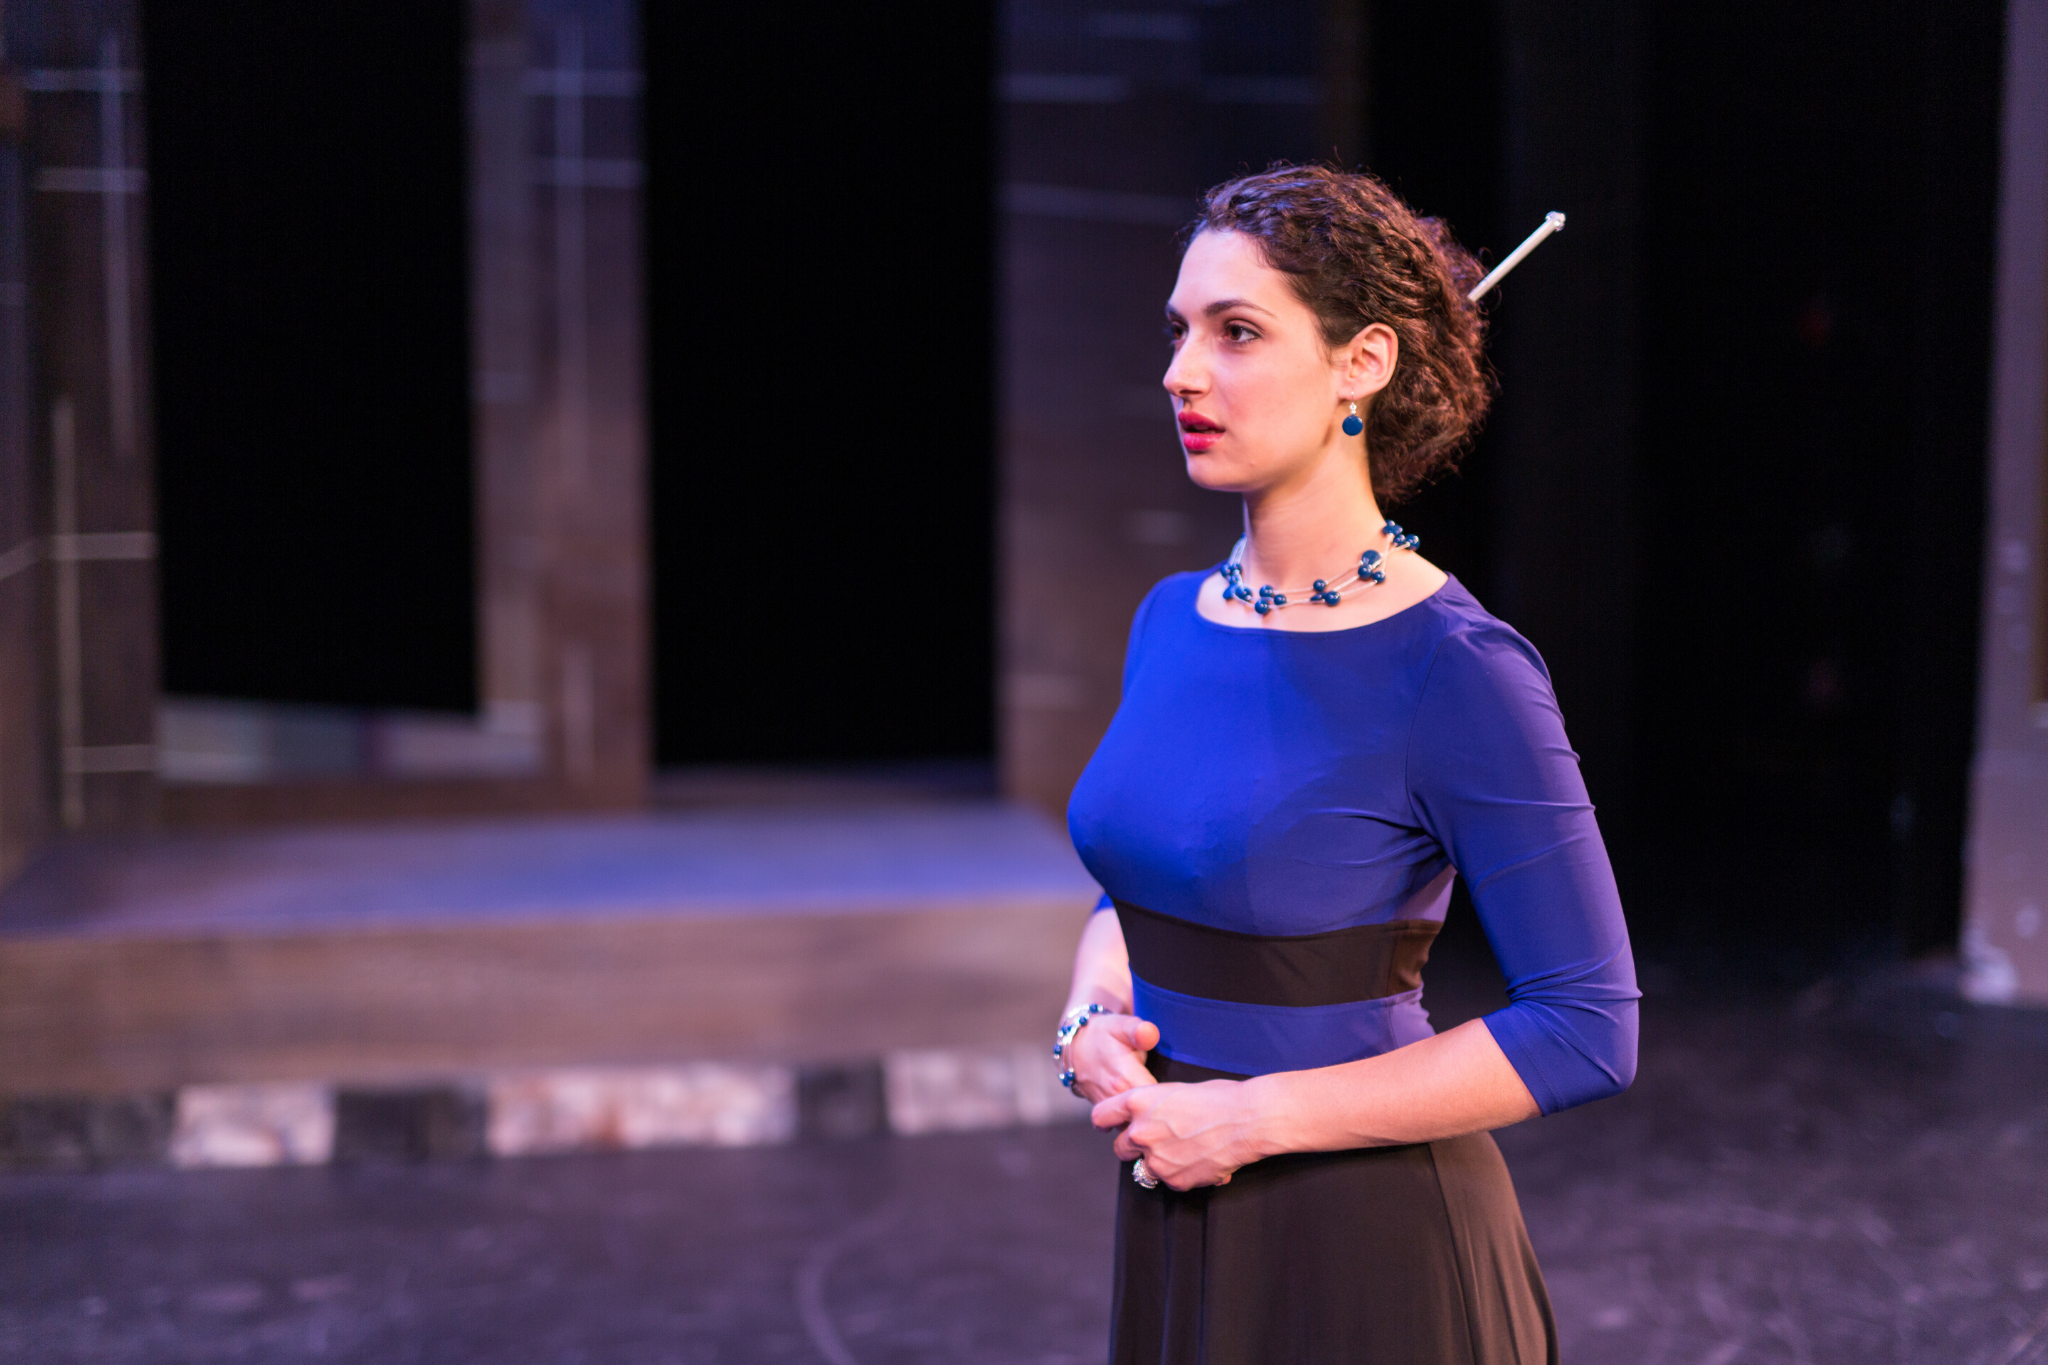 Sophia Blum (Lady Capulet) in Romeo & Juliet, CSC2, 2015-Photo by Nile Hawver